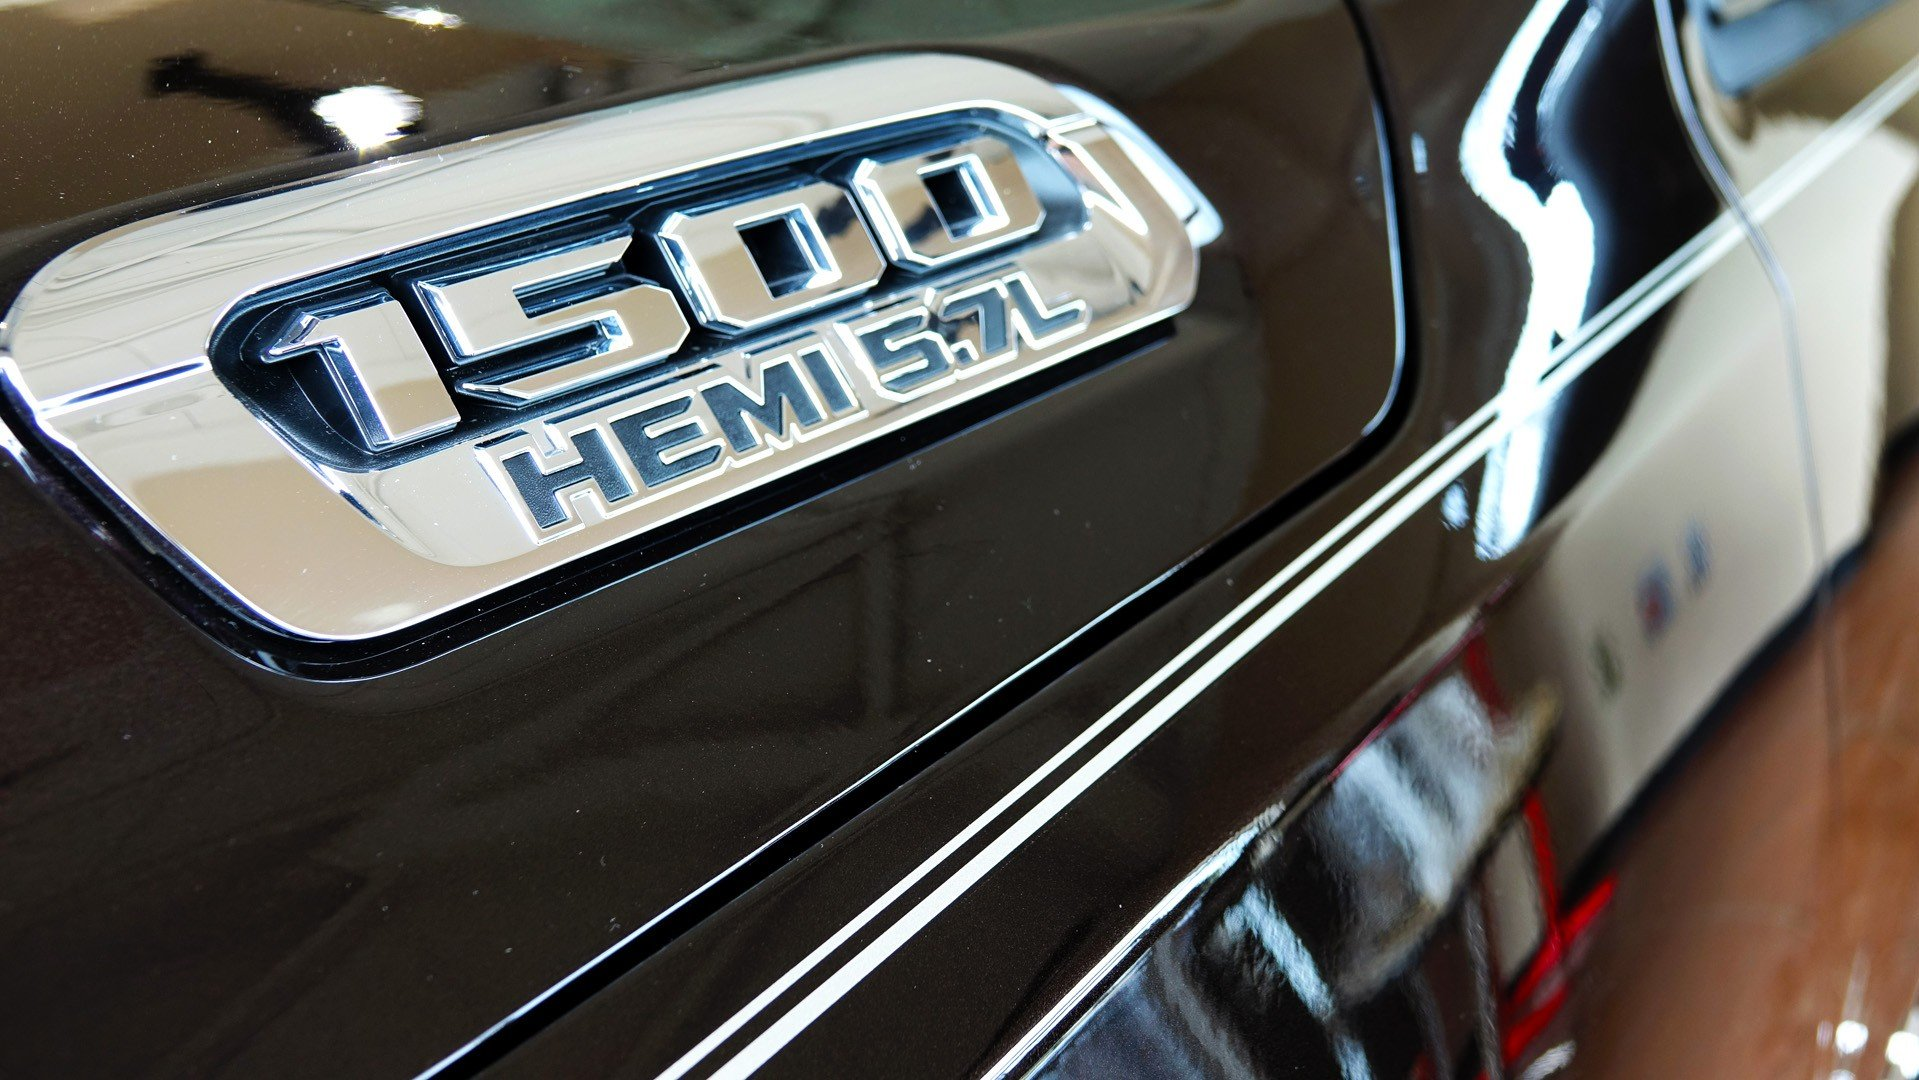 Ram 1500 Accessories - Hemi 5.7L